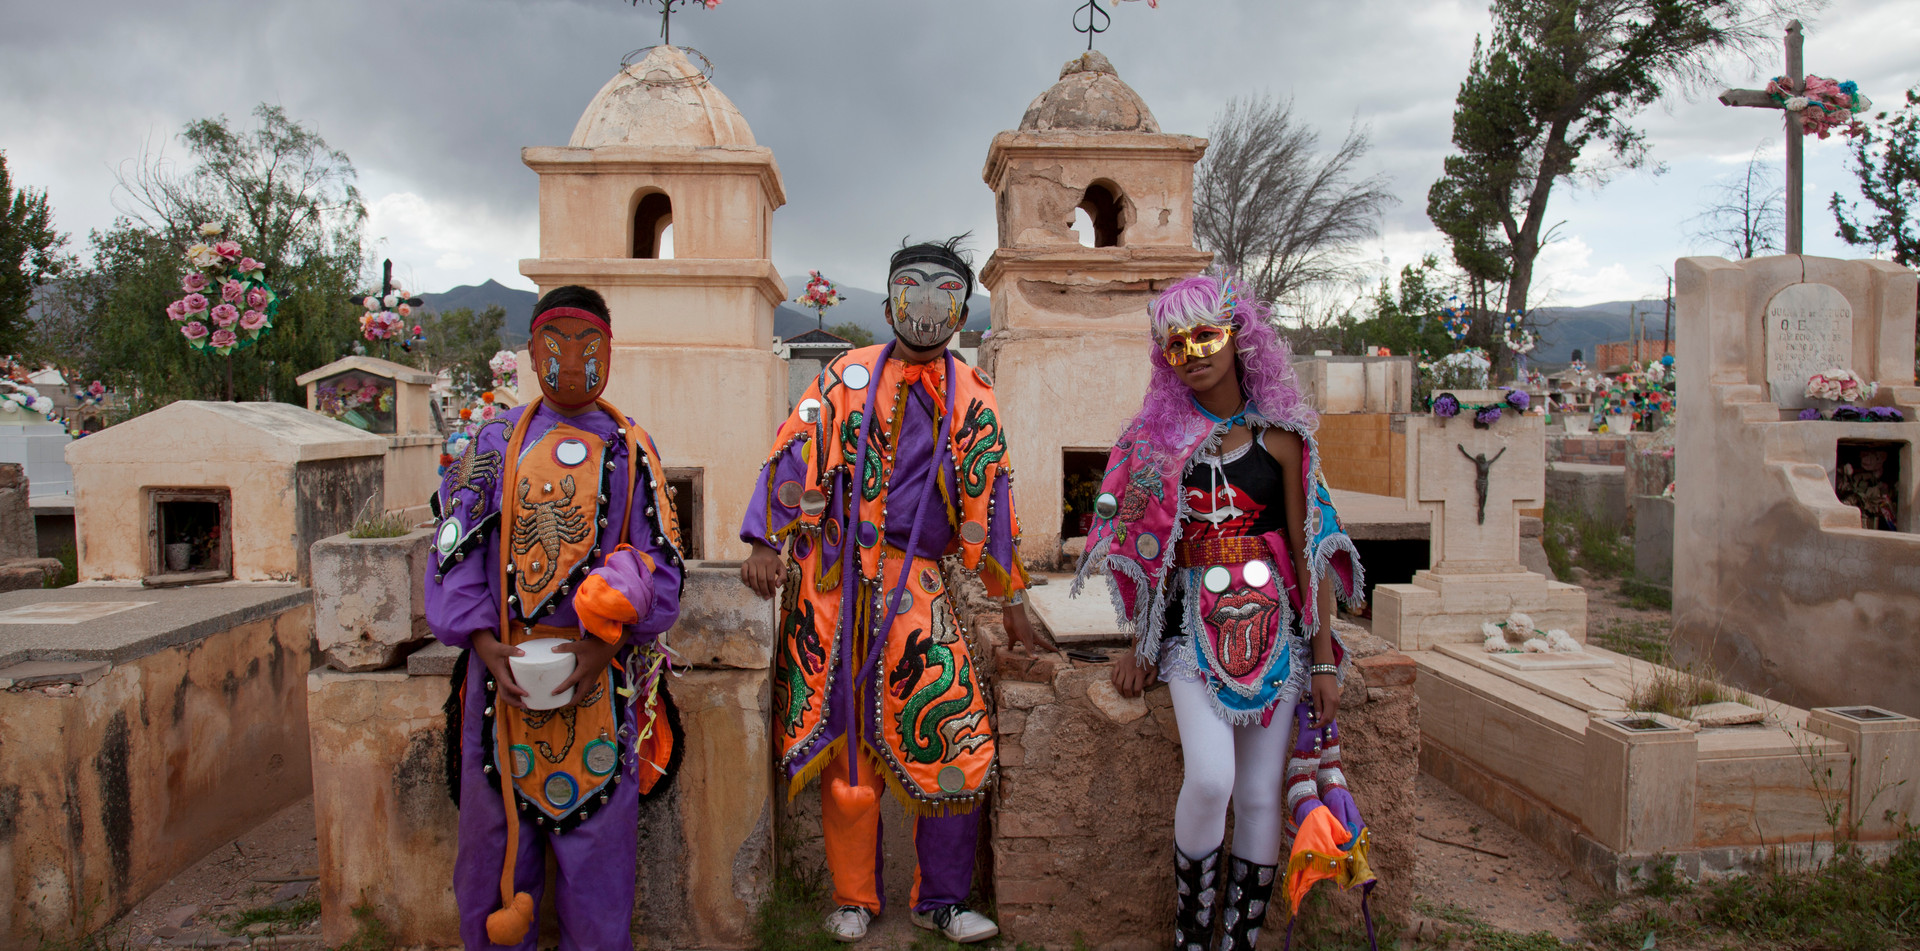 Masqued revellers during Humahuaca carnival in Argentina